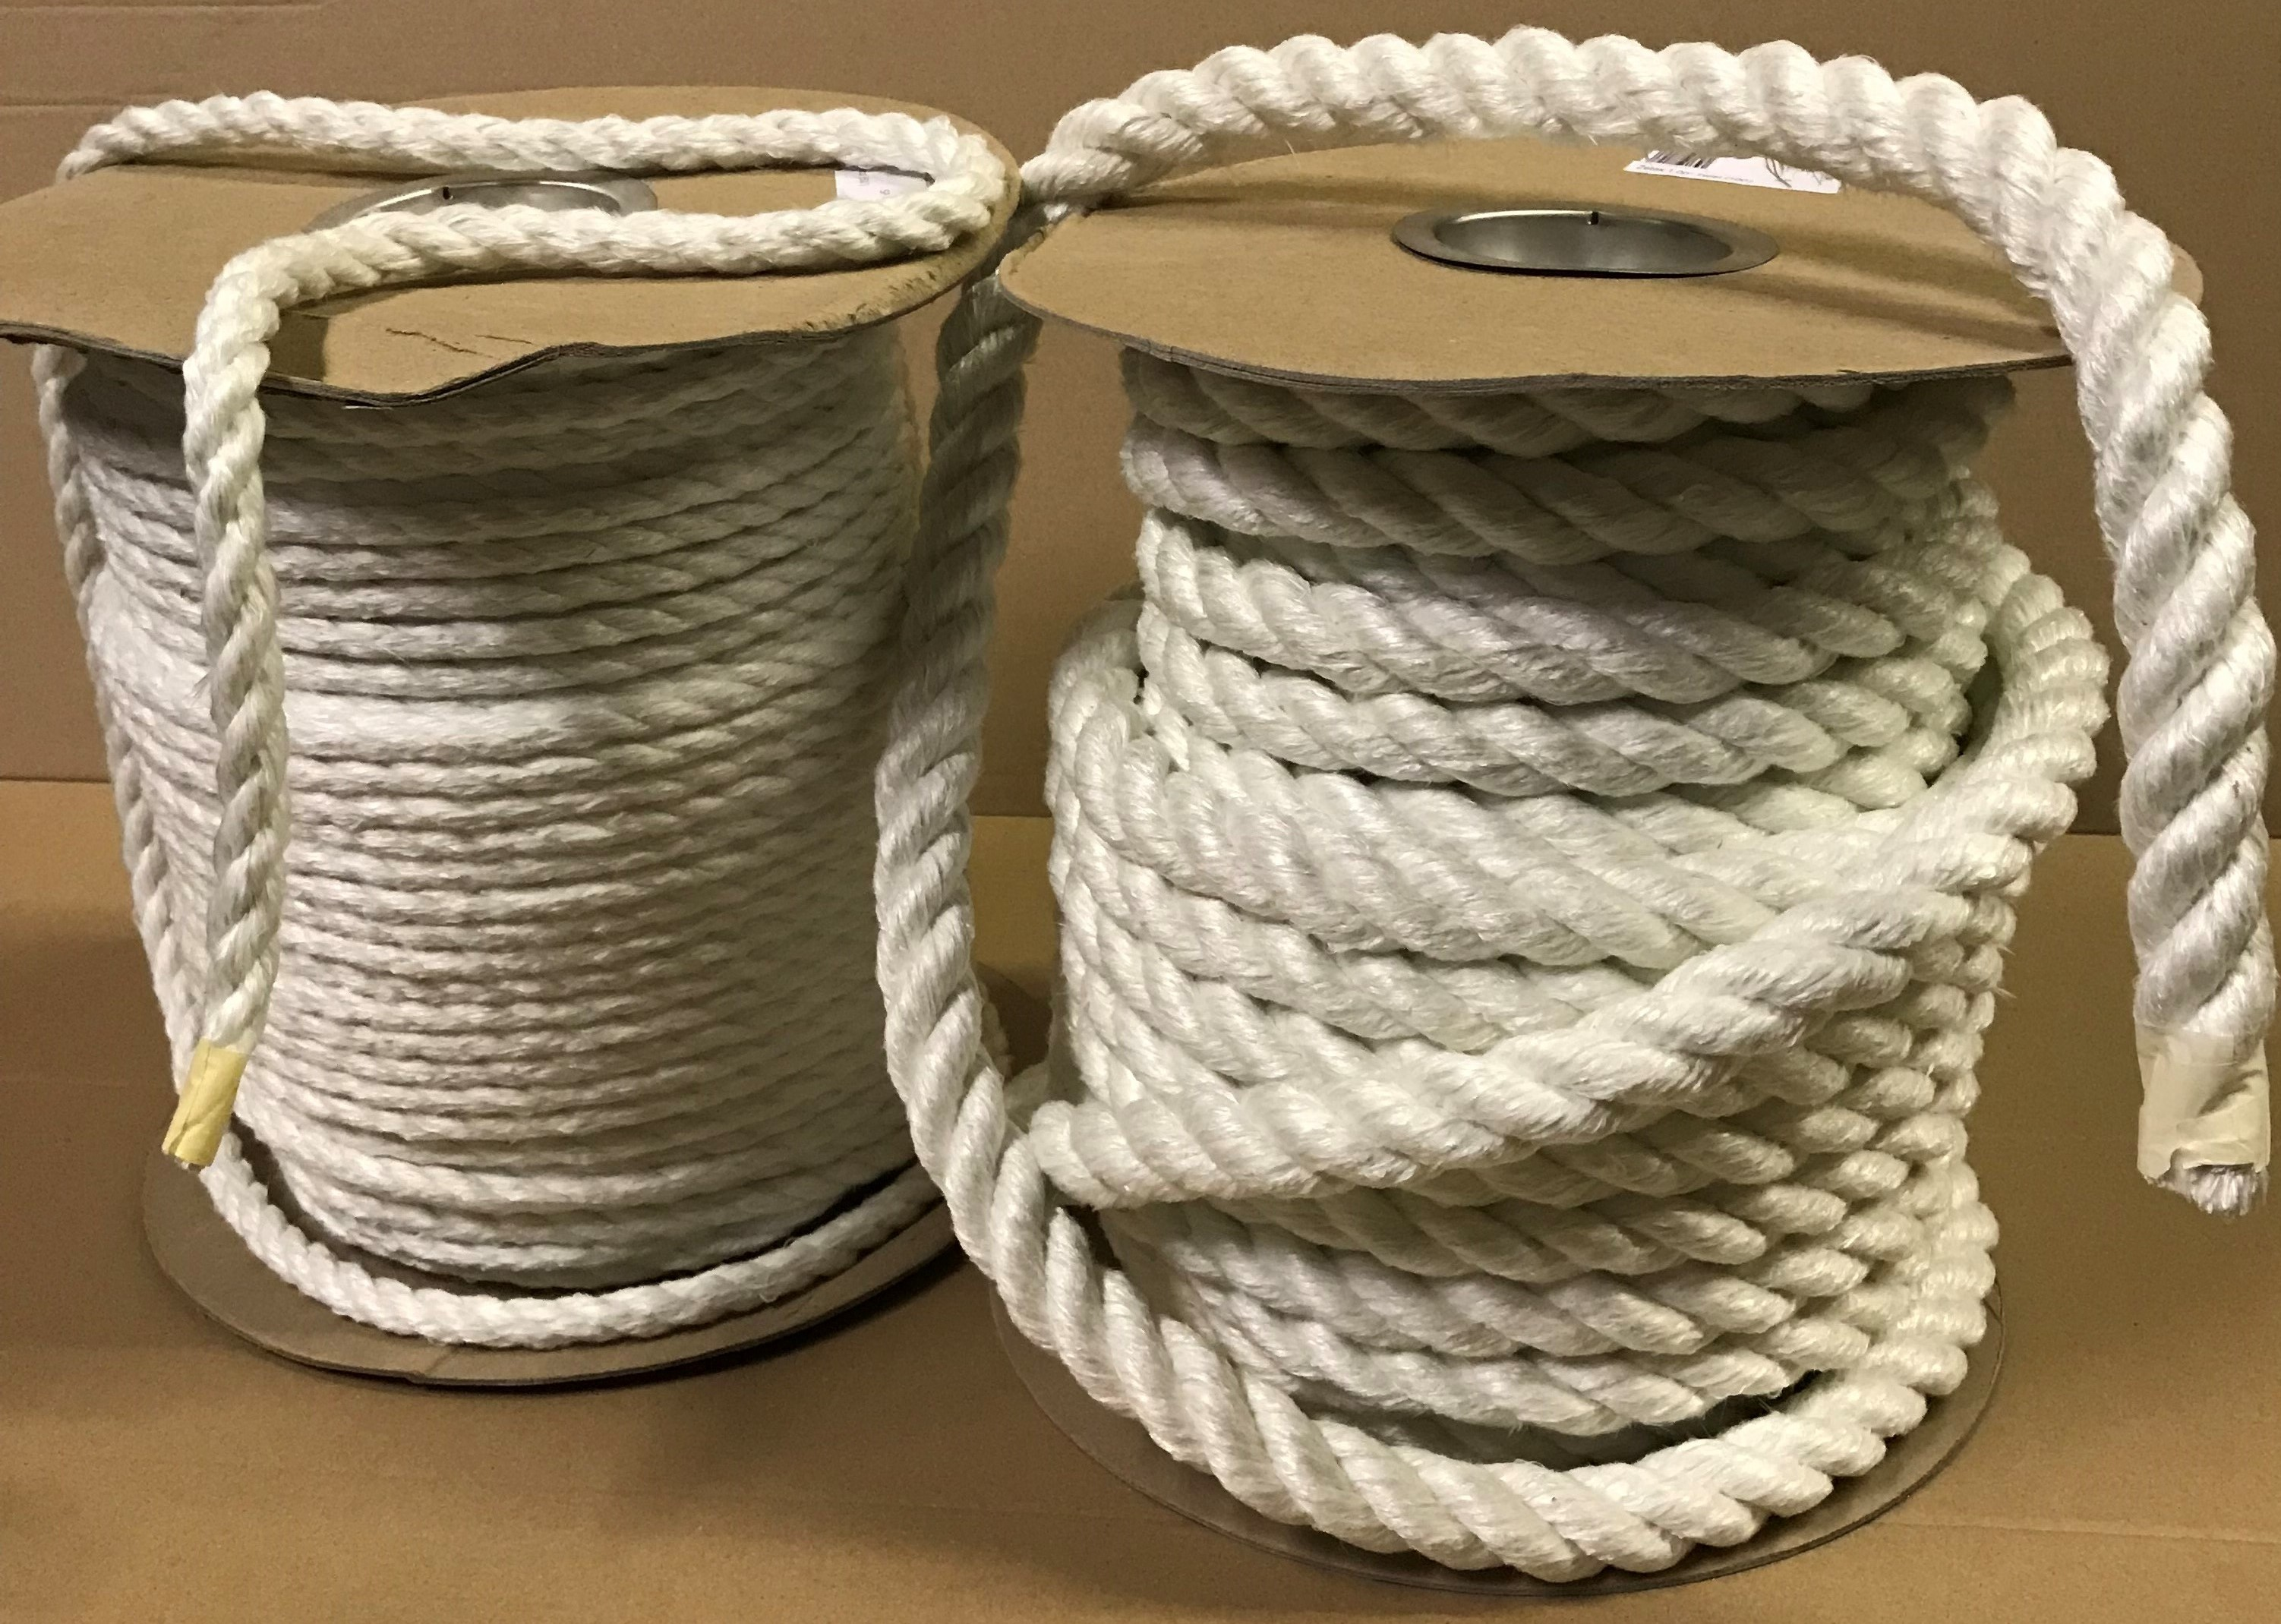 Fiberglass Rope and Tape